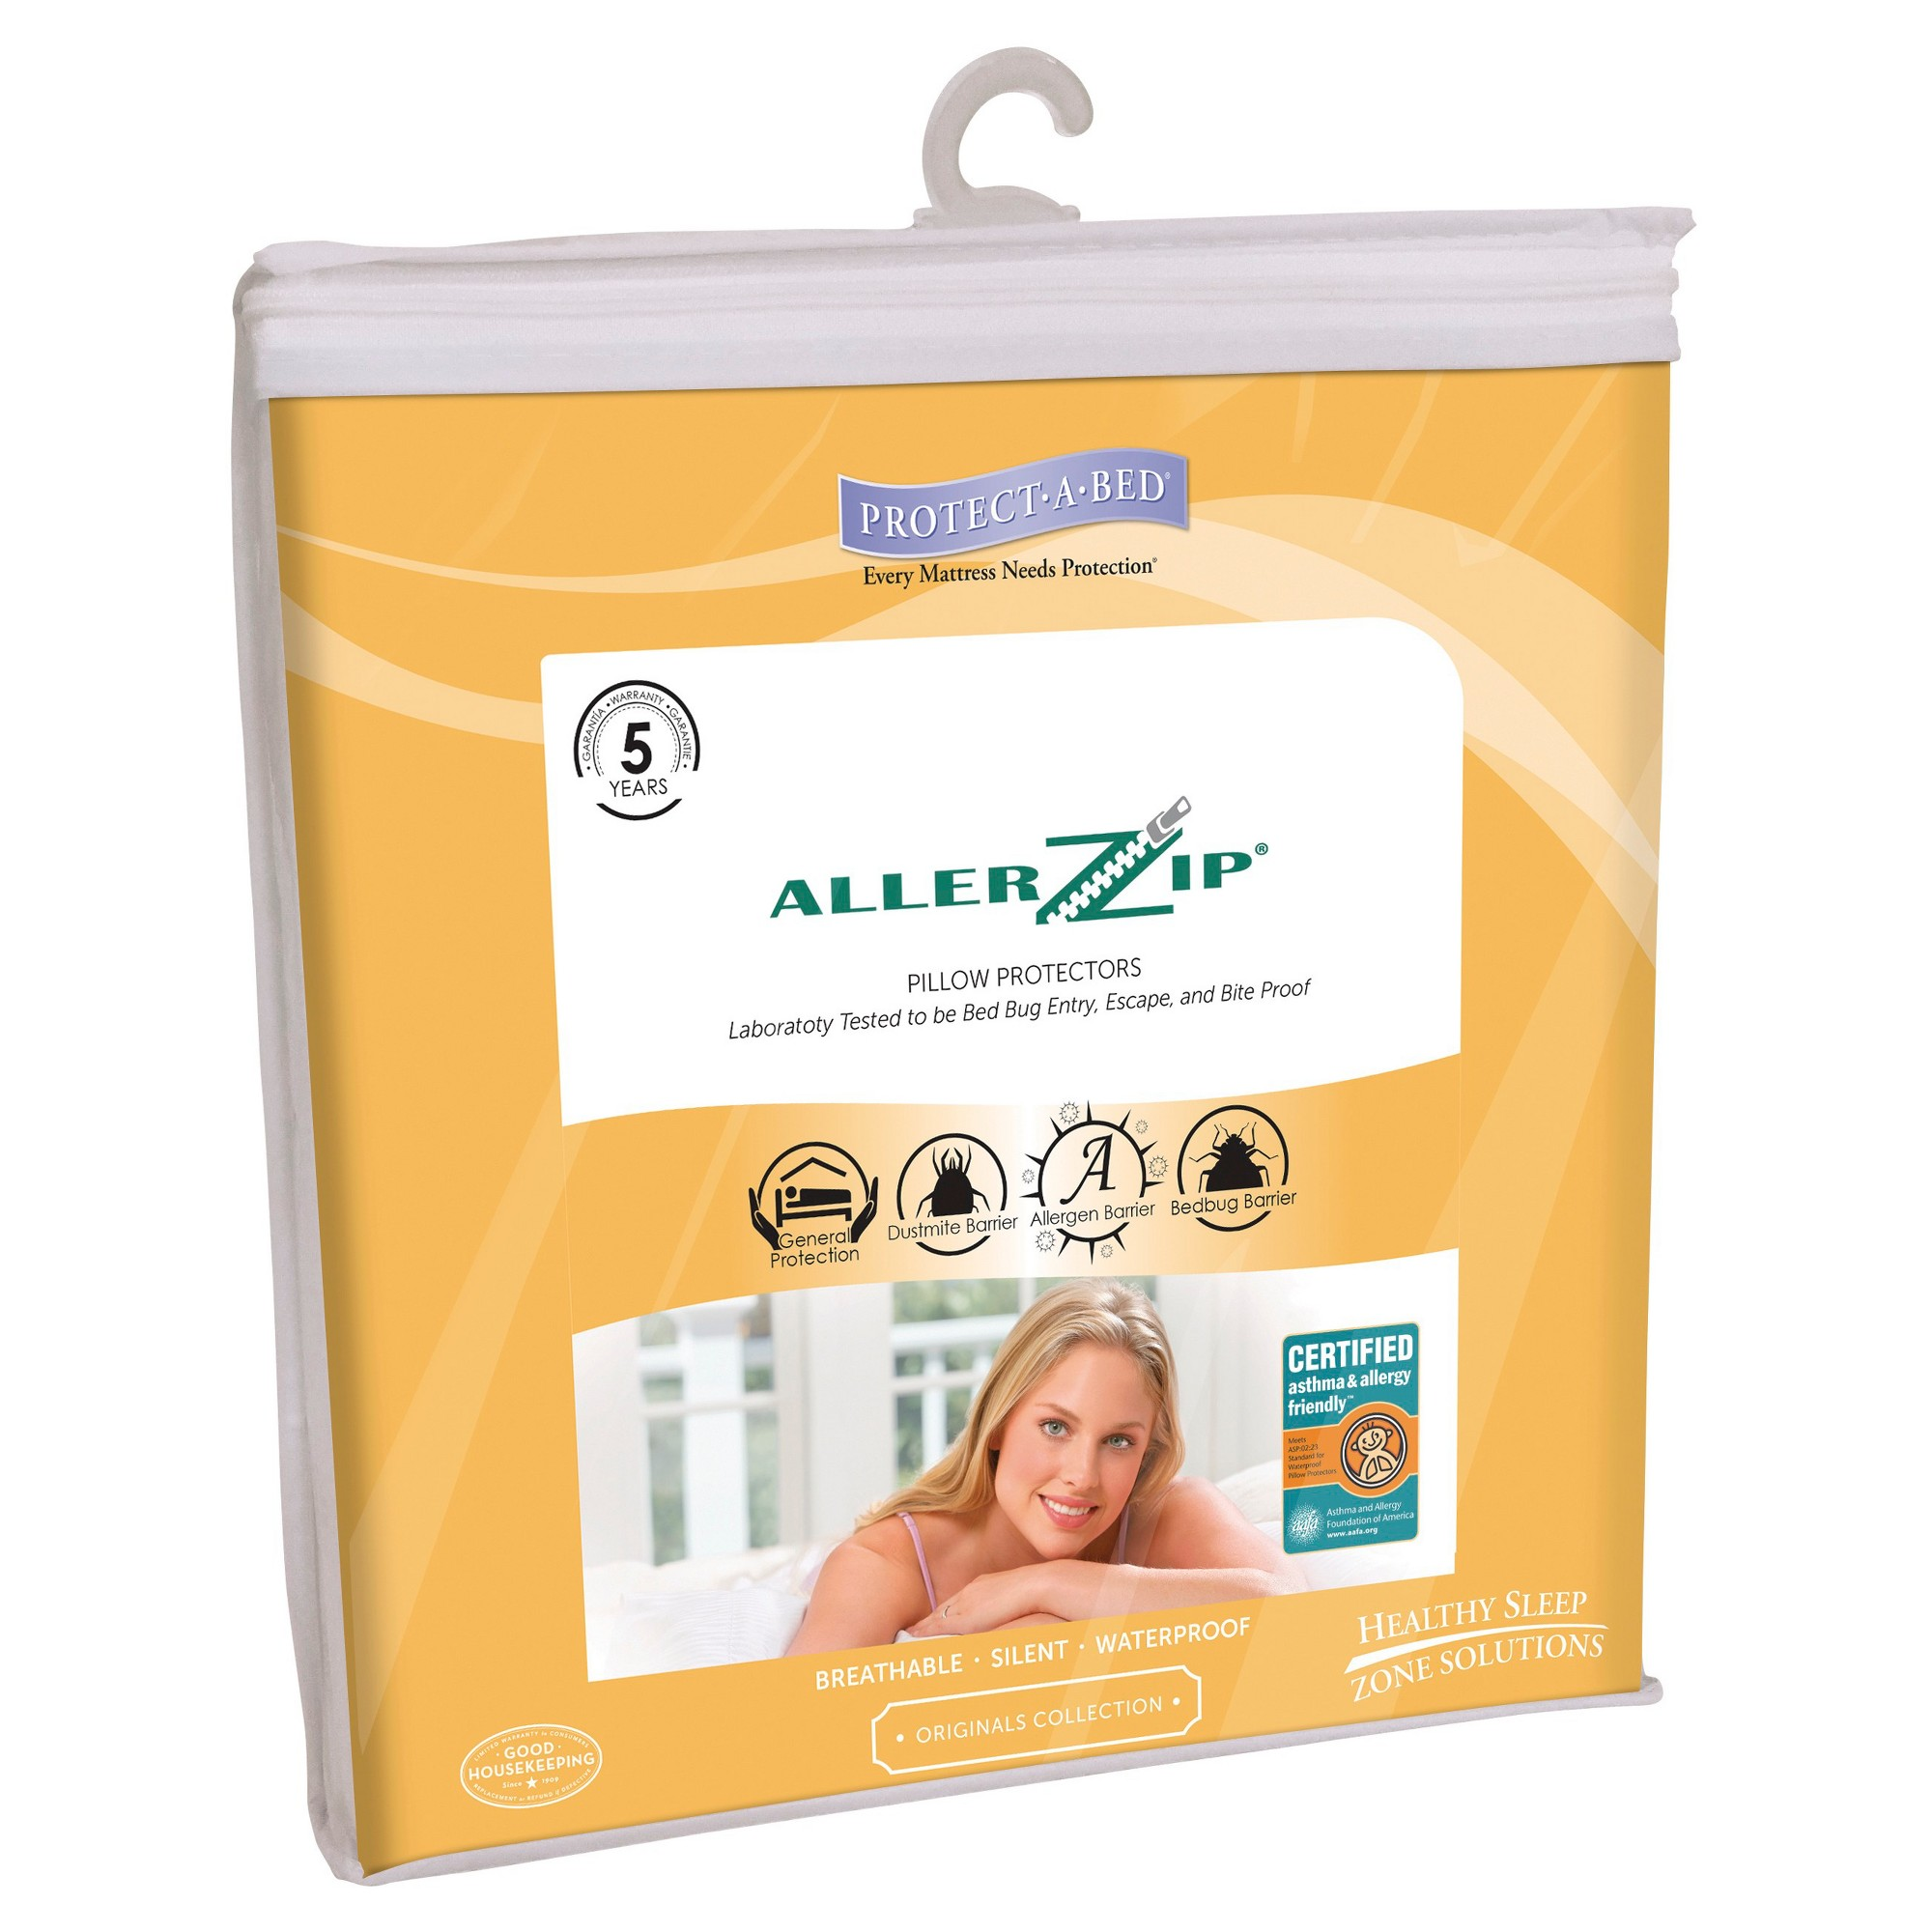 ProtectABed 2pk Allerzip AntiAllergy & Bed Bug Proof